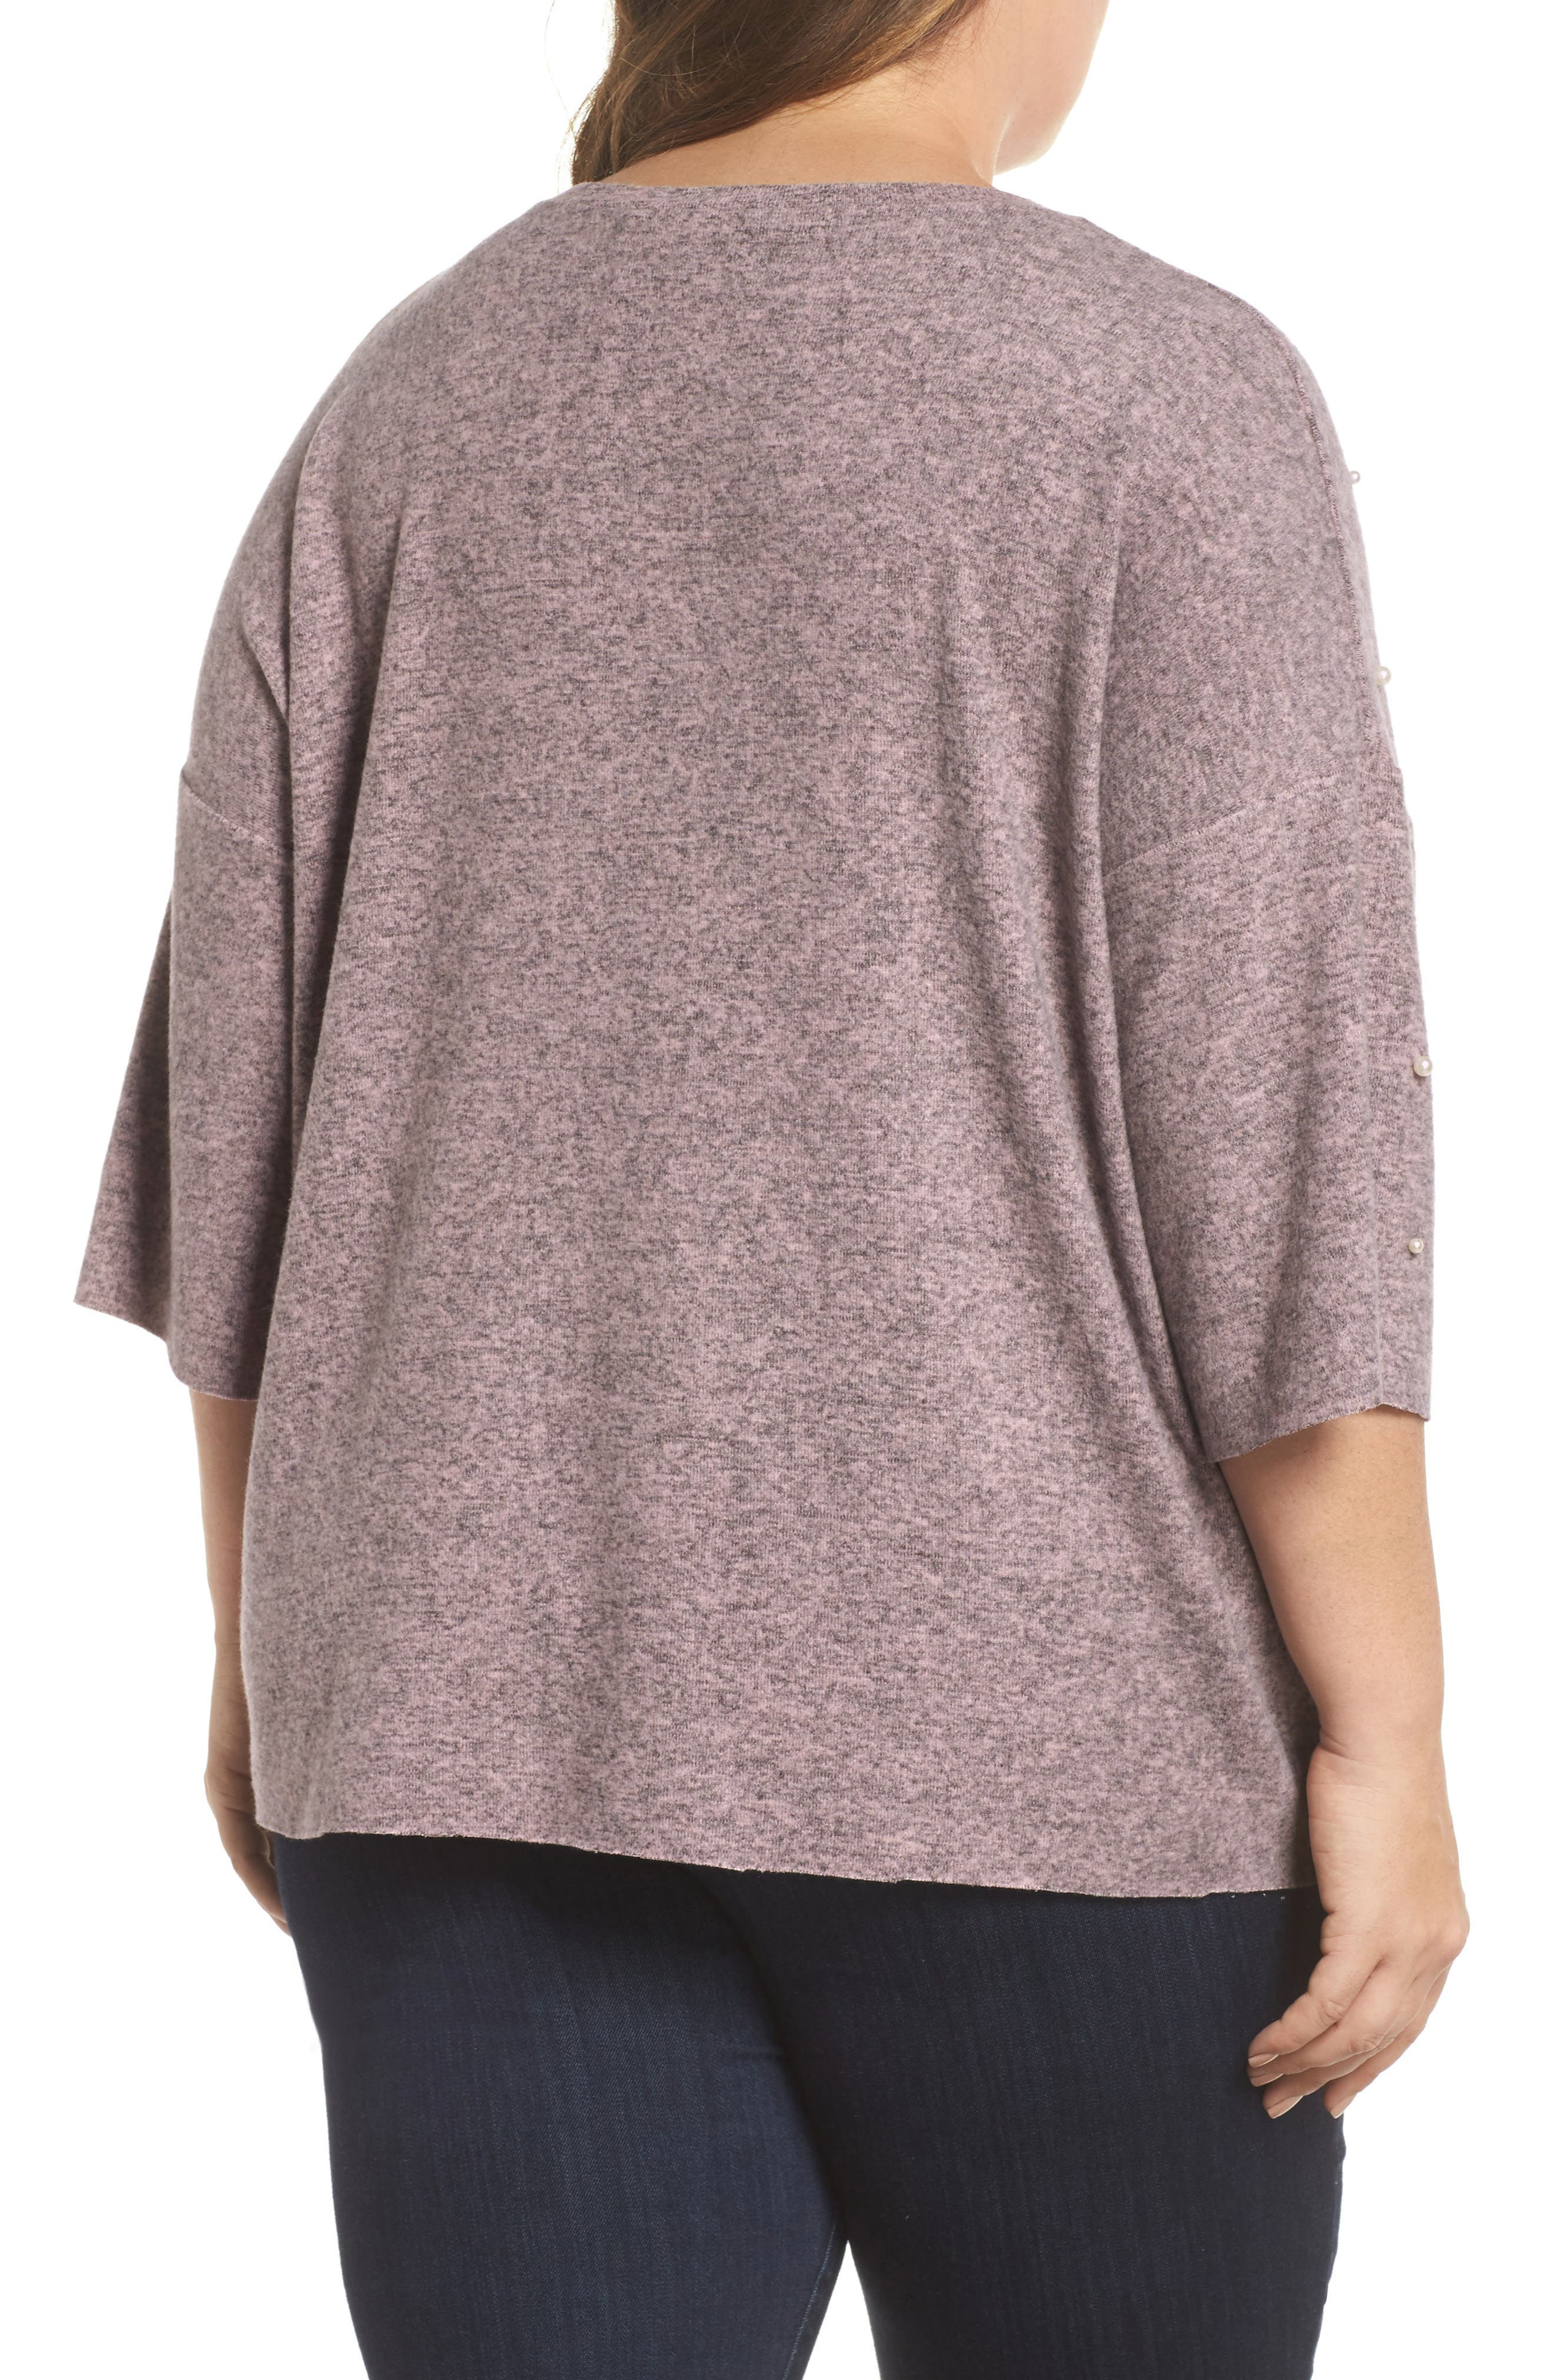 Pearl Embellished Sweater,                             Alternate thumbnail 2, color,                             020